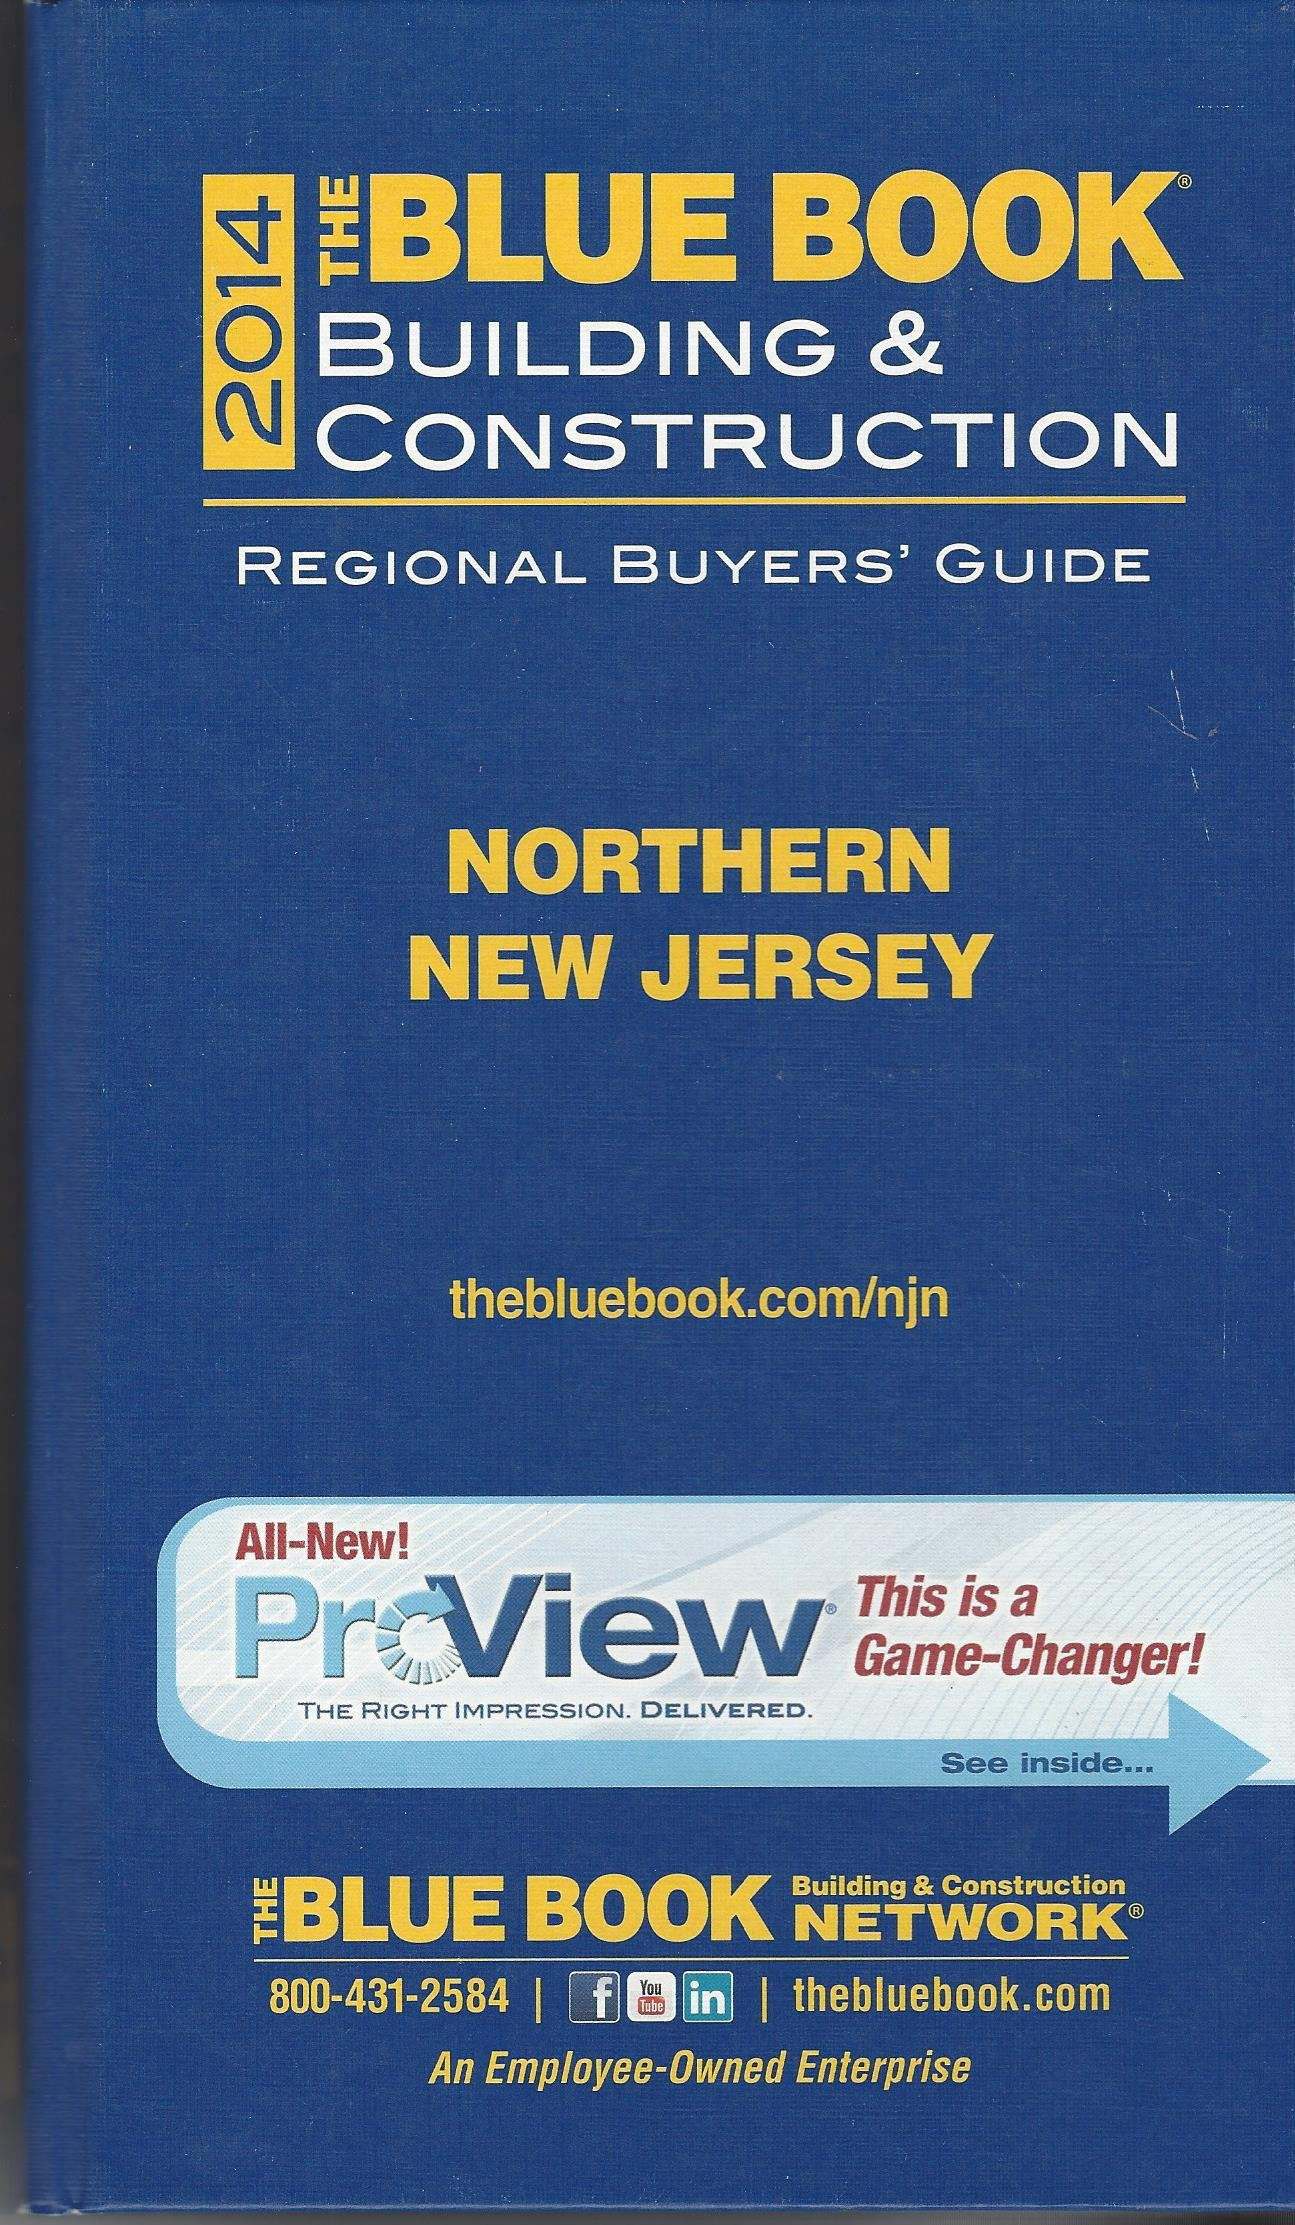 Construction Blue Book >> The Blue Book Building Construction Northern New Jersey